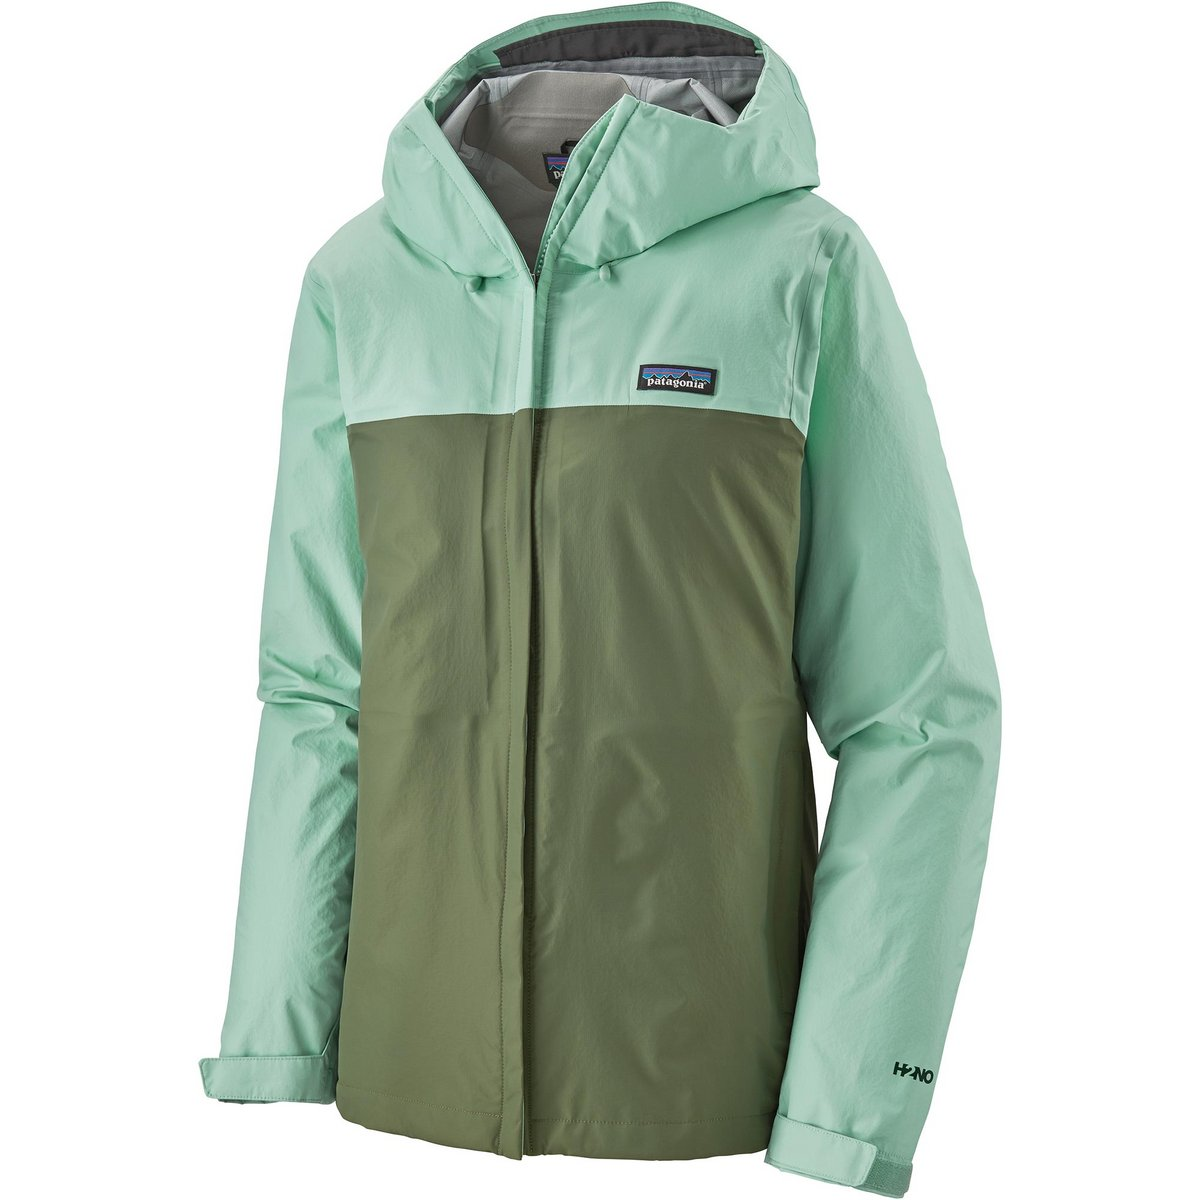 Patagonia Women's Torrentshell 3L Jacket 0